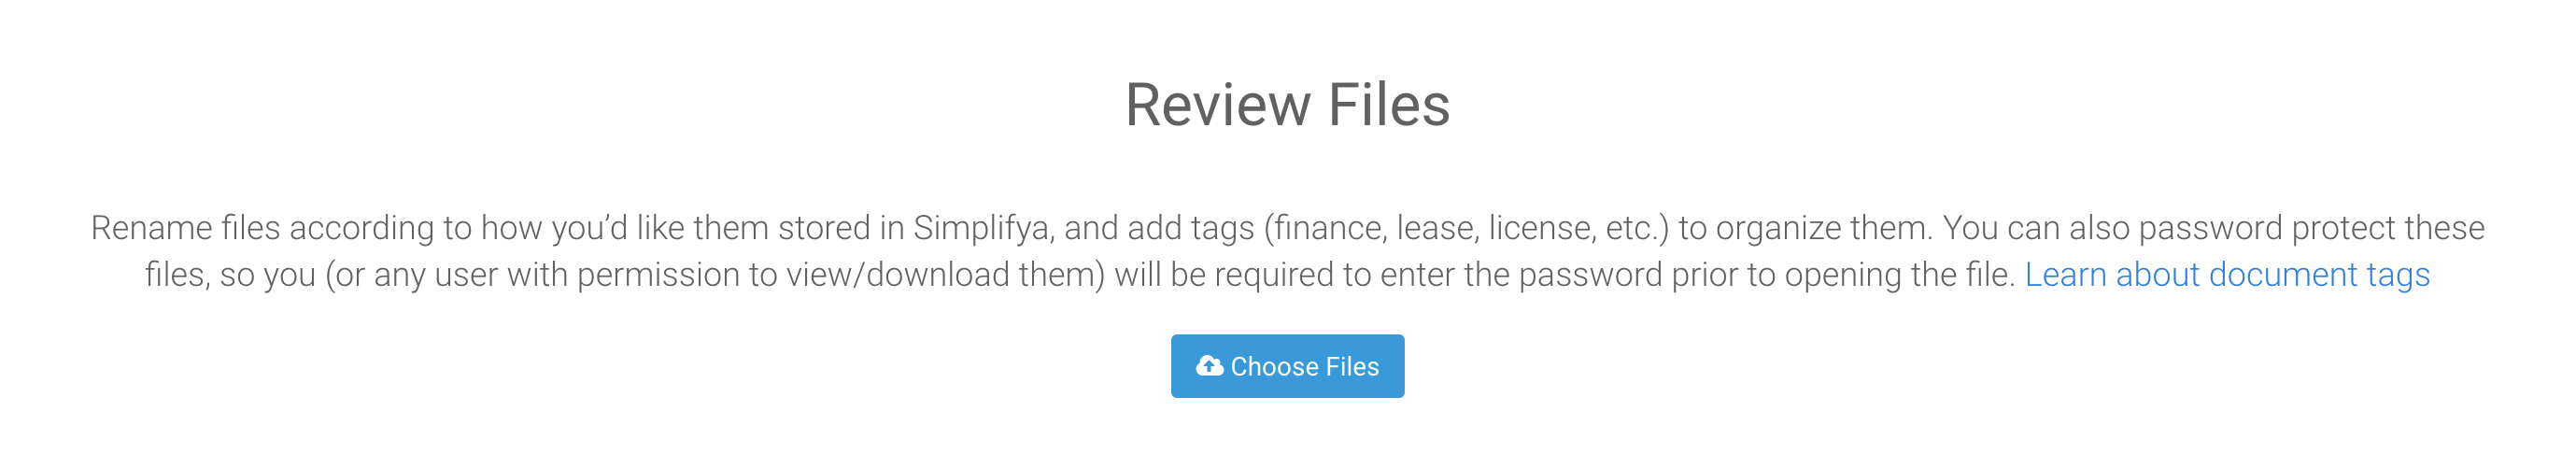 Documents_upload_files_review_files_zendesk.png